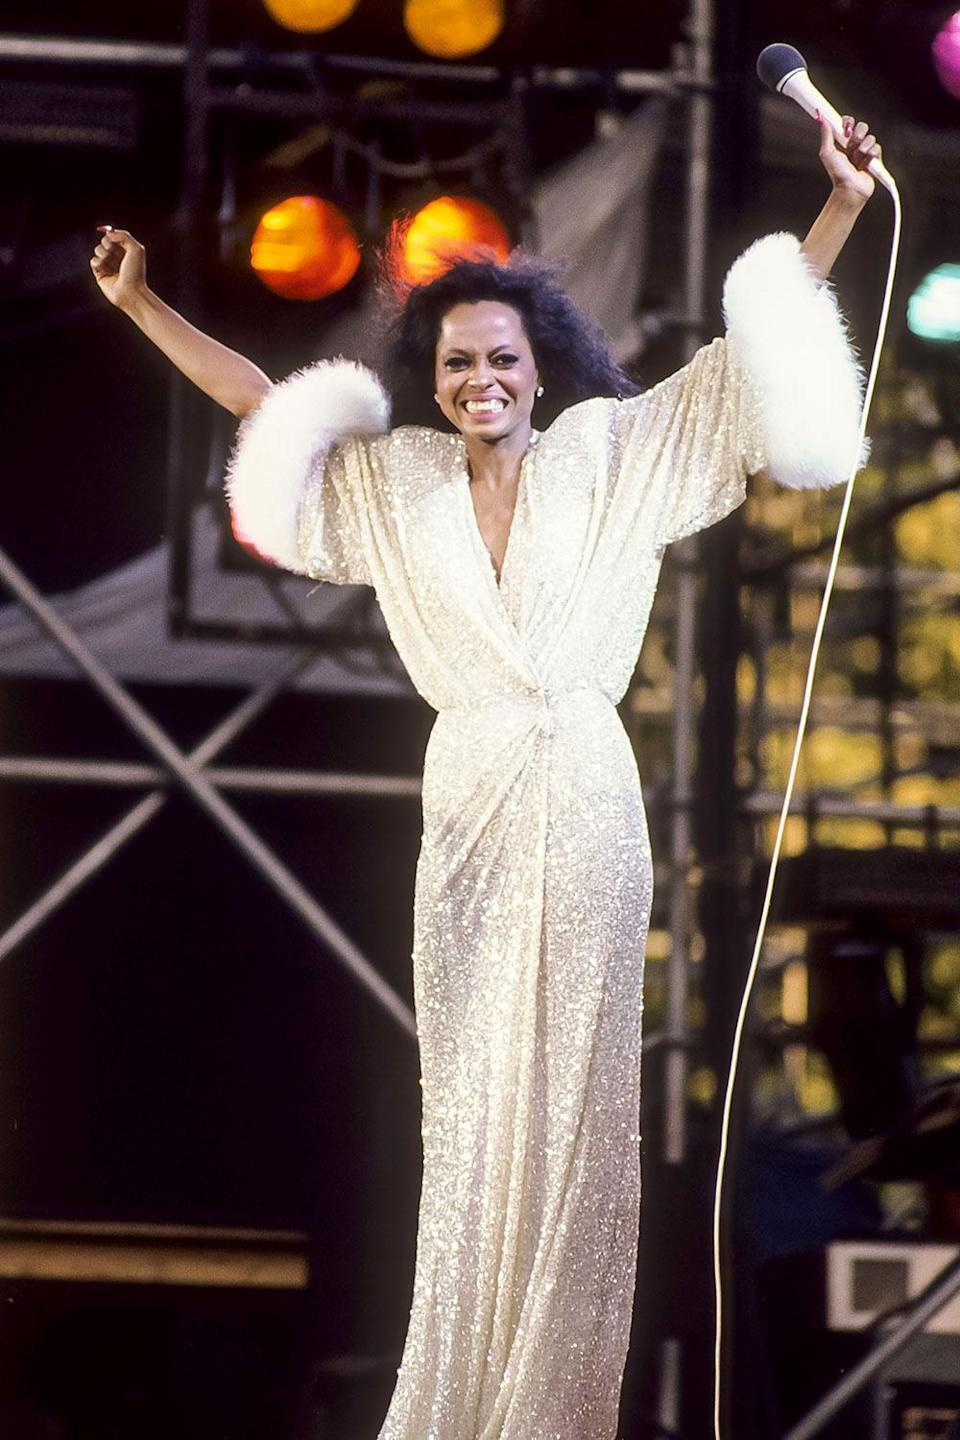 <p>Happy Birthday, Diana Ross! The singer turns 77 today and through her decades-long career, she's blessed us with some of the most gorgeous, iconic looks Hollywood has ever seen. Here, a look back at 20 of our favoties.</p> <p>At right, performing in New York City's Central Park in July 1983.</p>